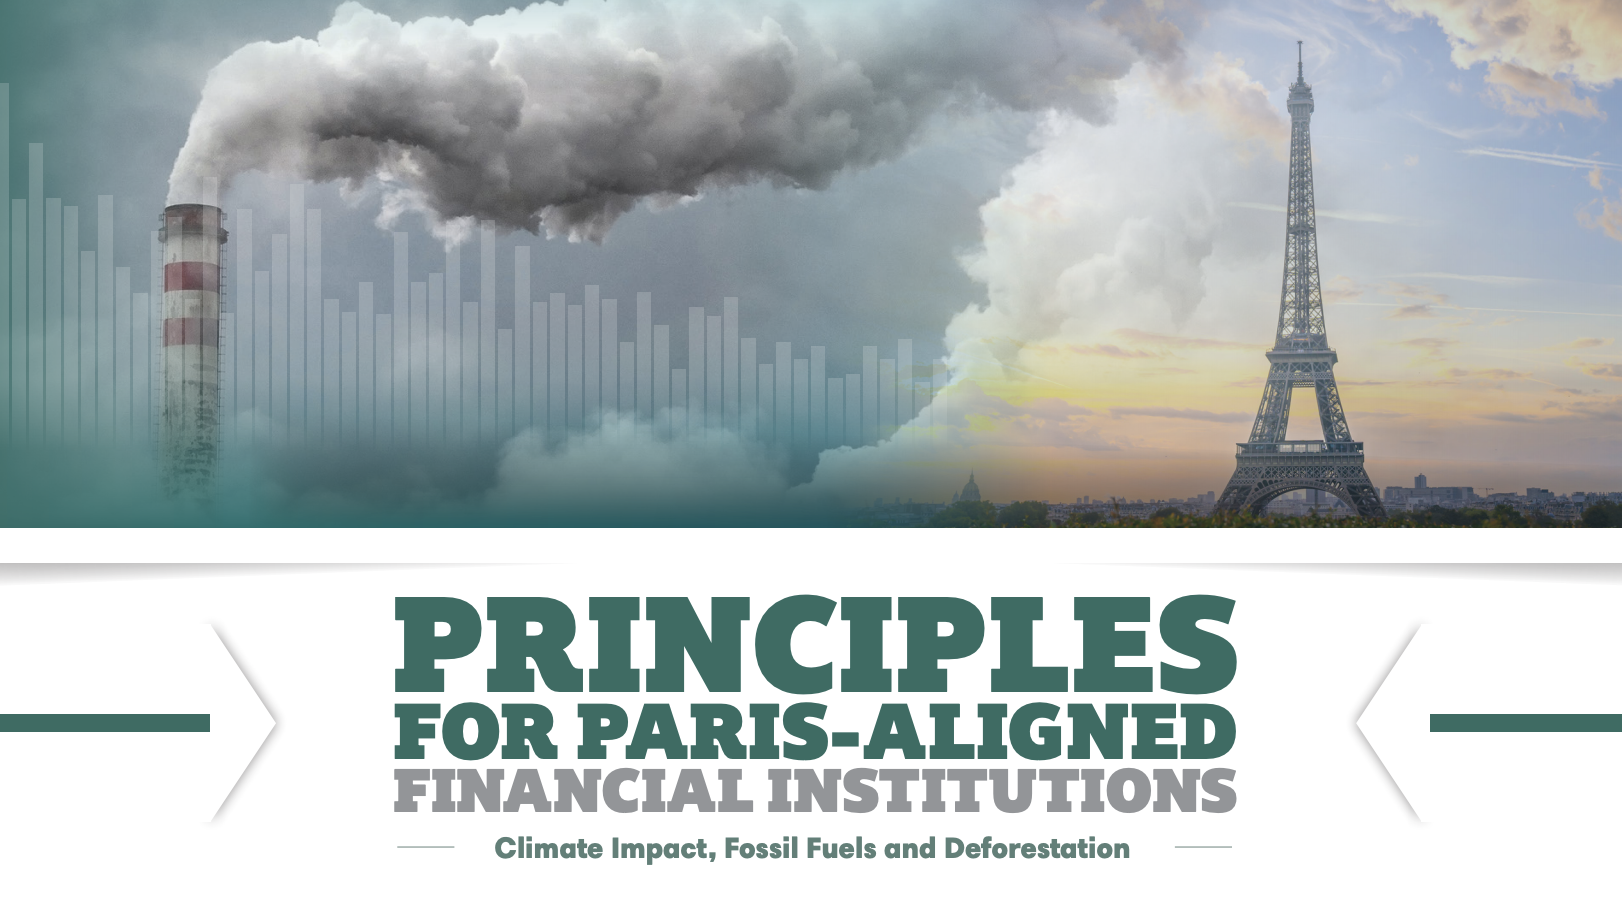 Principles for Paris-Aligned Financial Institutions: Climate Impact, Fossil Fuels, and Deforestation